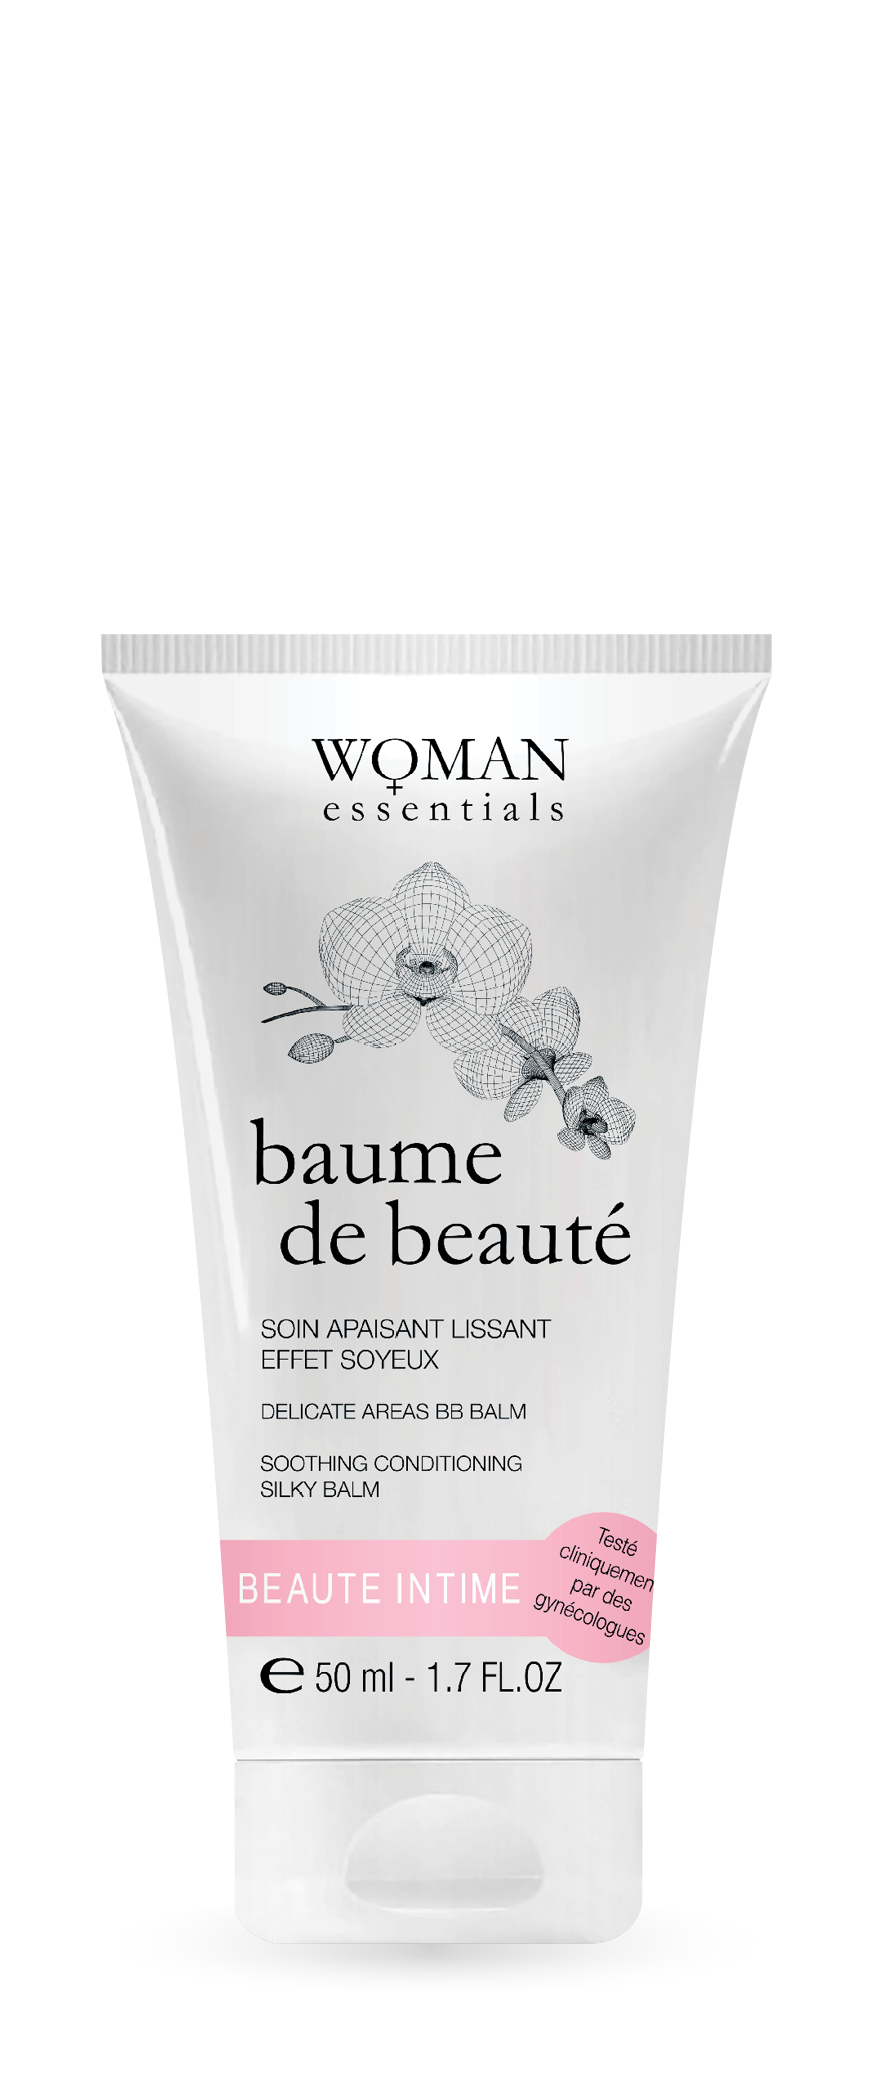 woman women essential wound healing balm stretch marks soothing intimate care vulva balm moisturizer